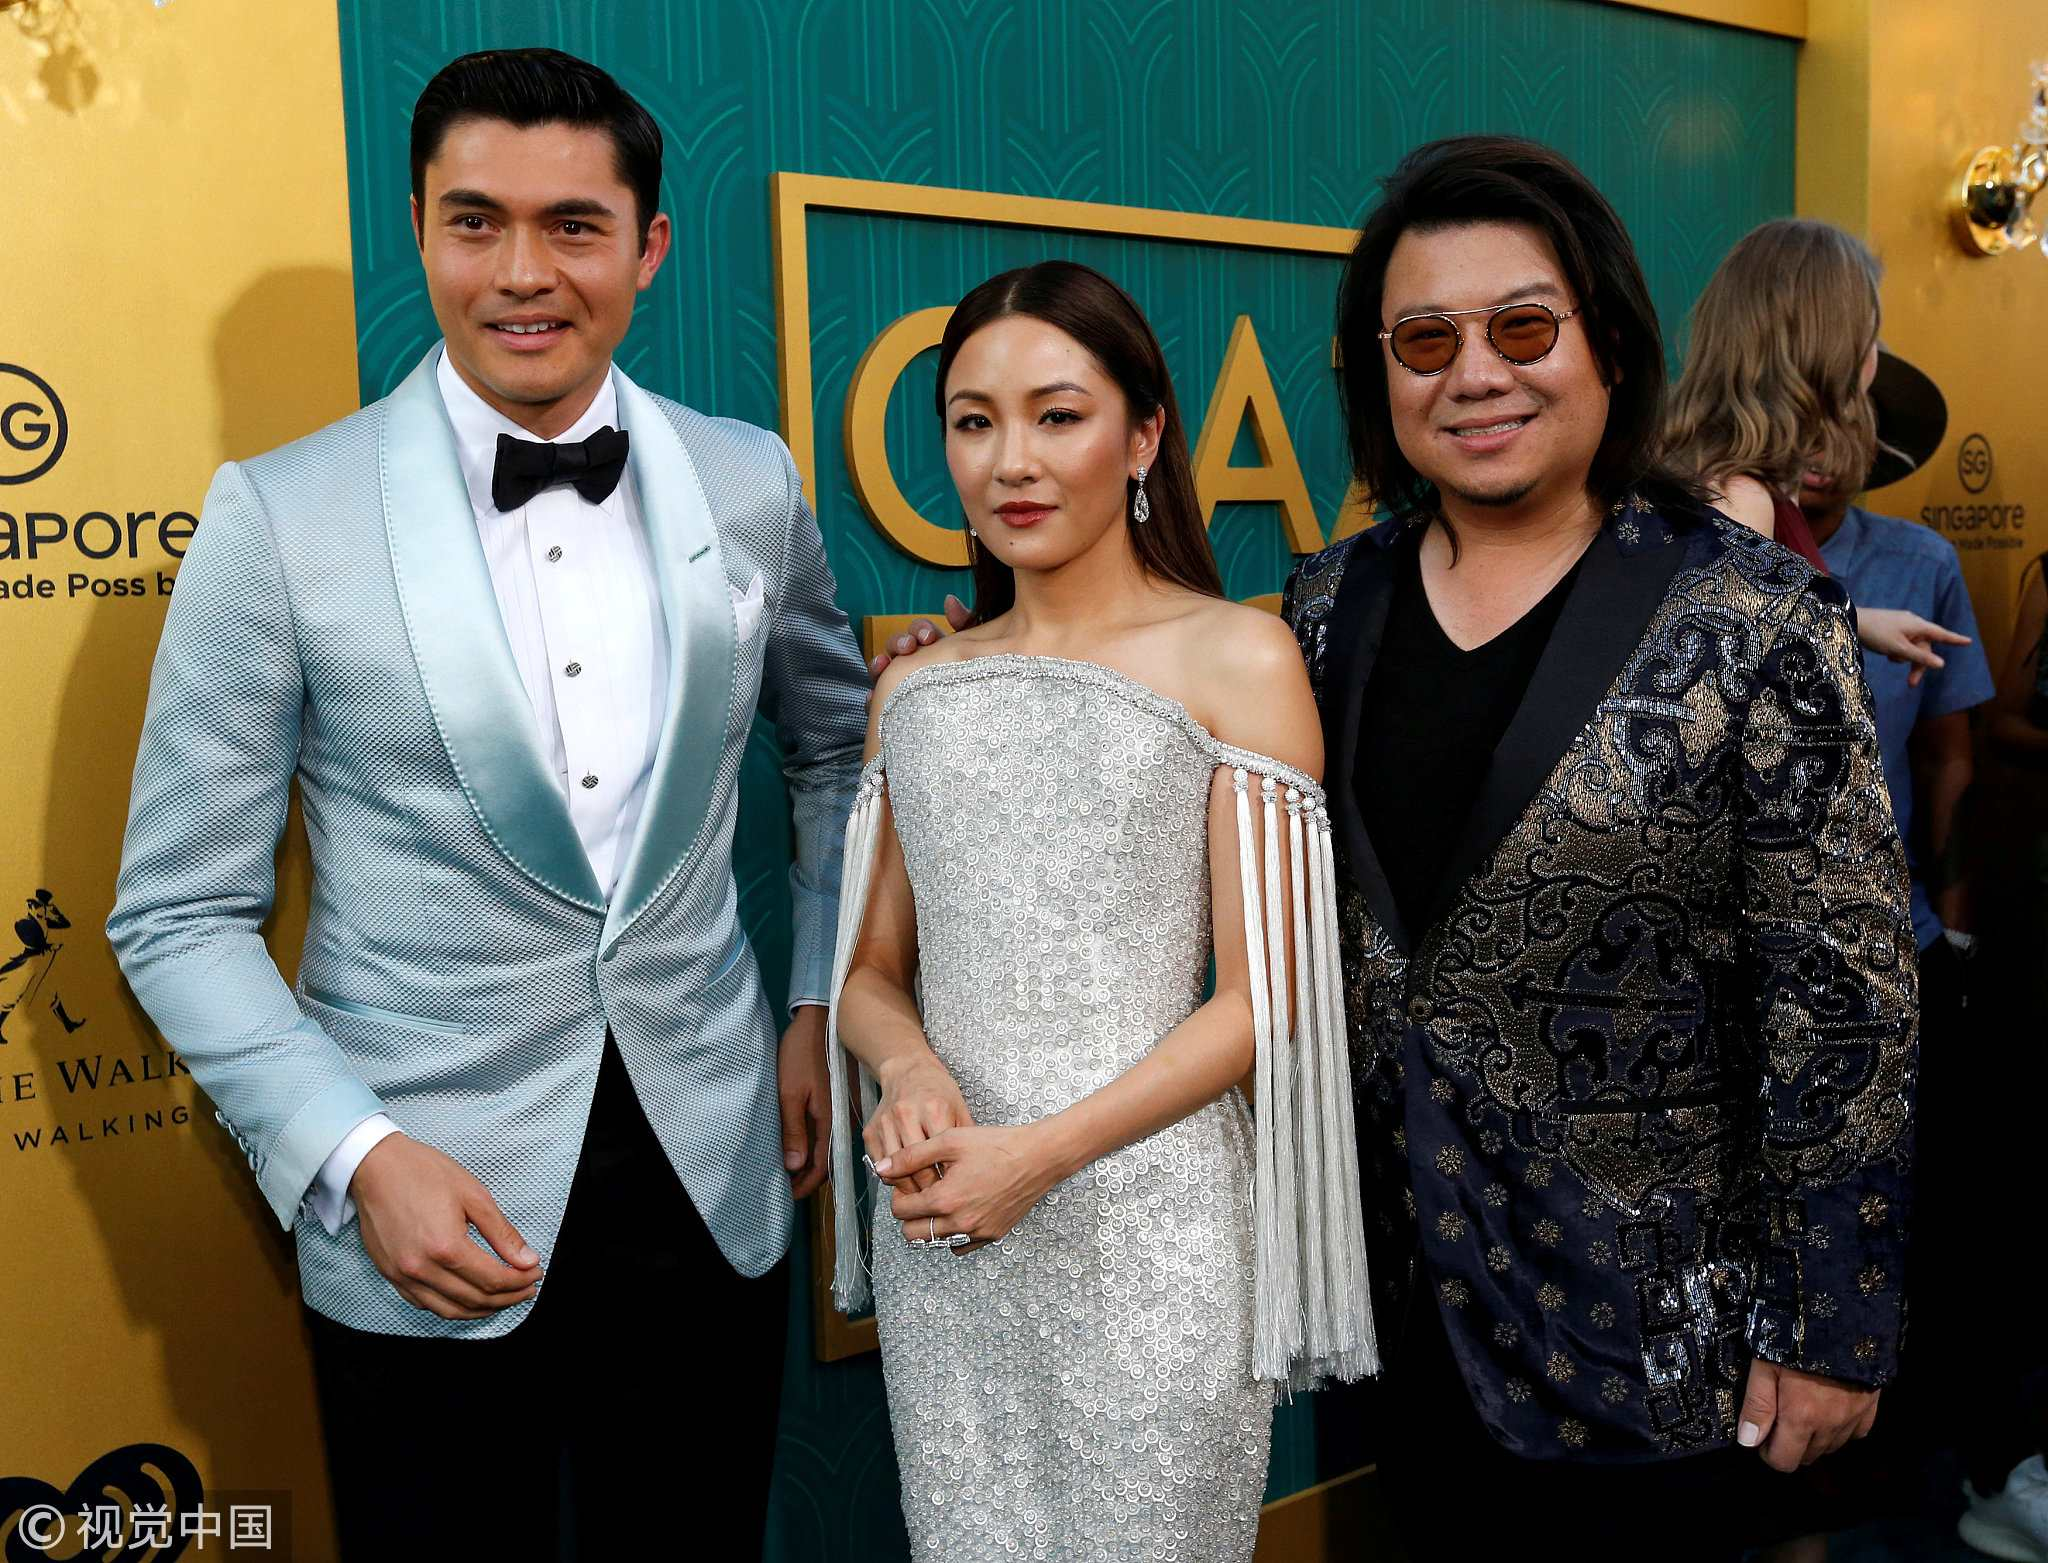 Hollywood actors are shifting their star power to China